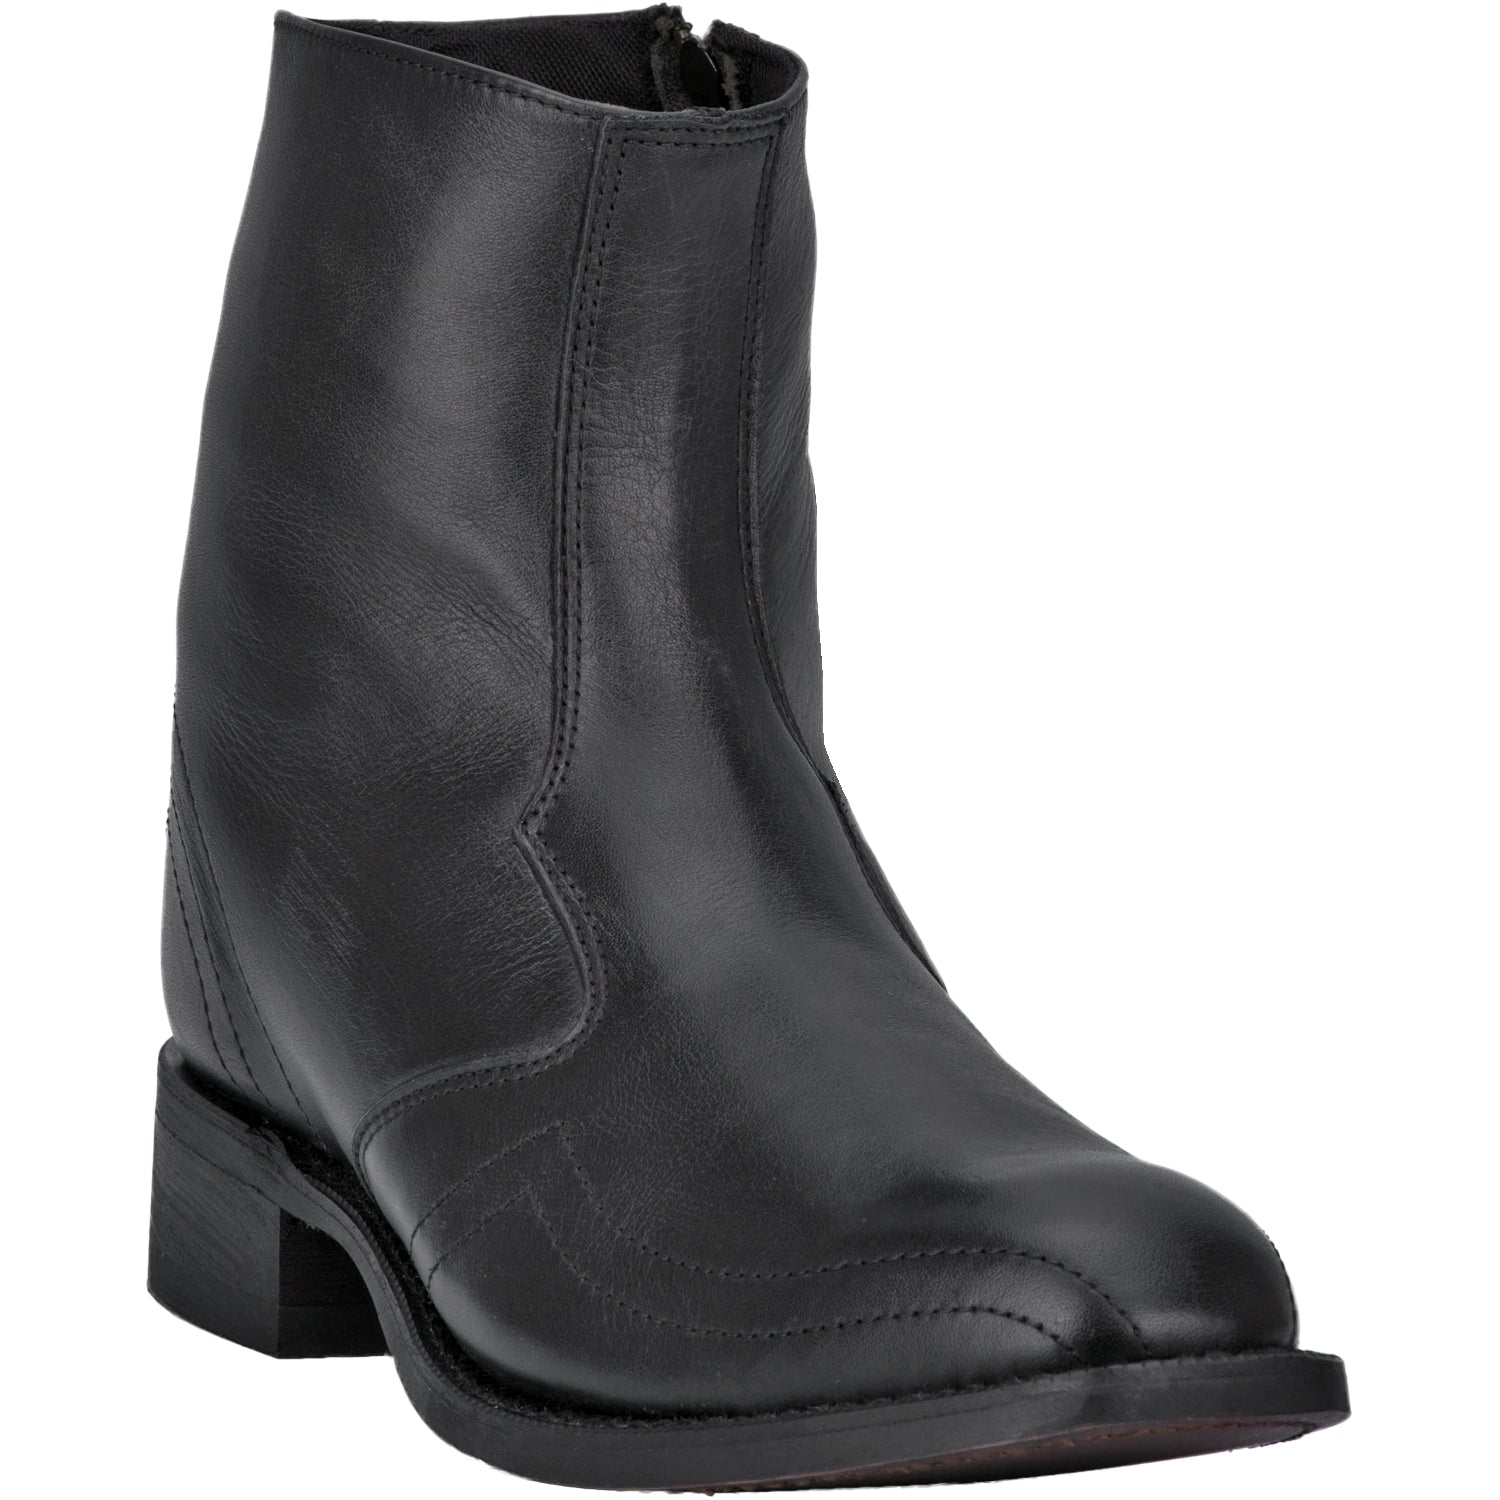 HOXIE LEATHER BOOT 4196604969002